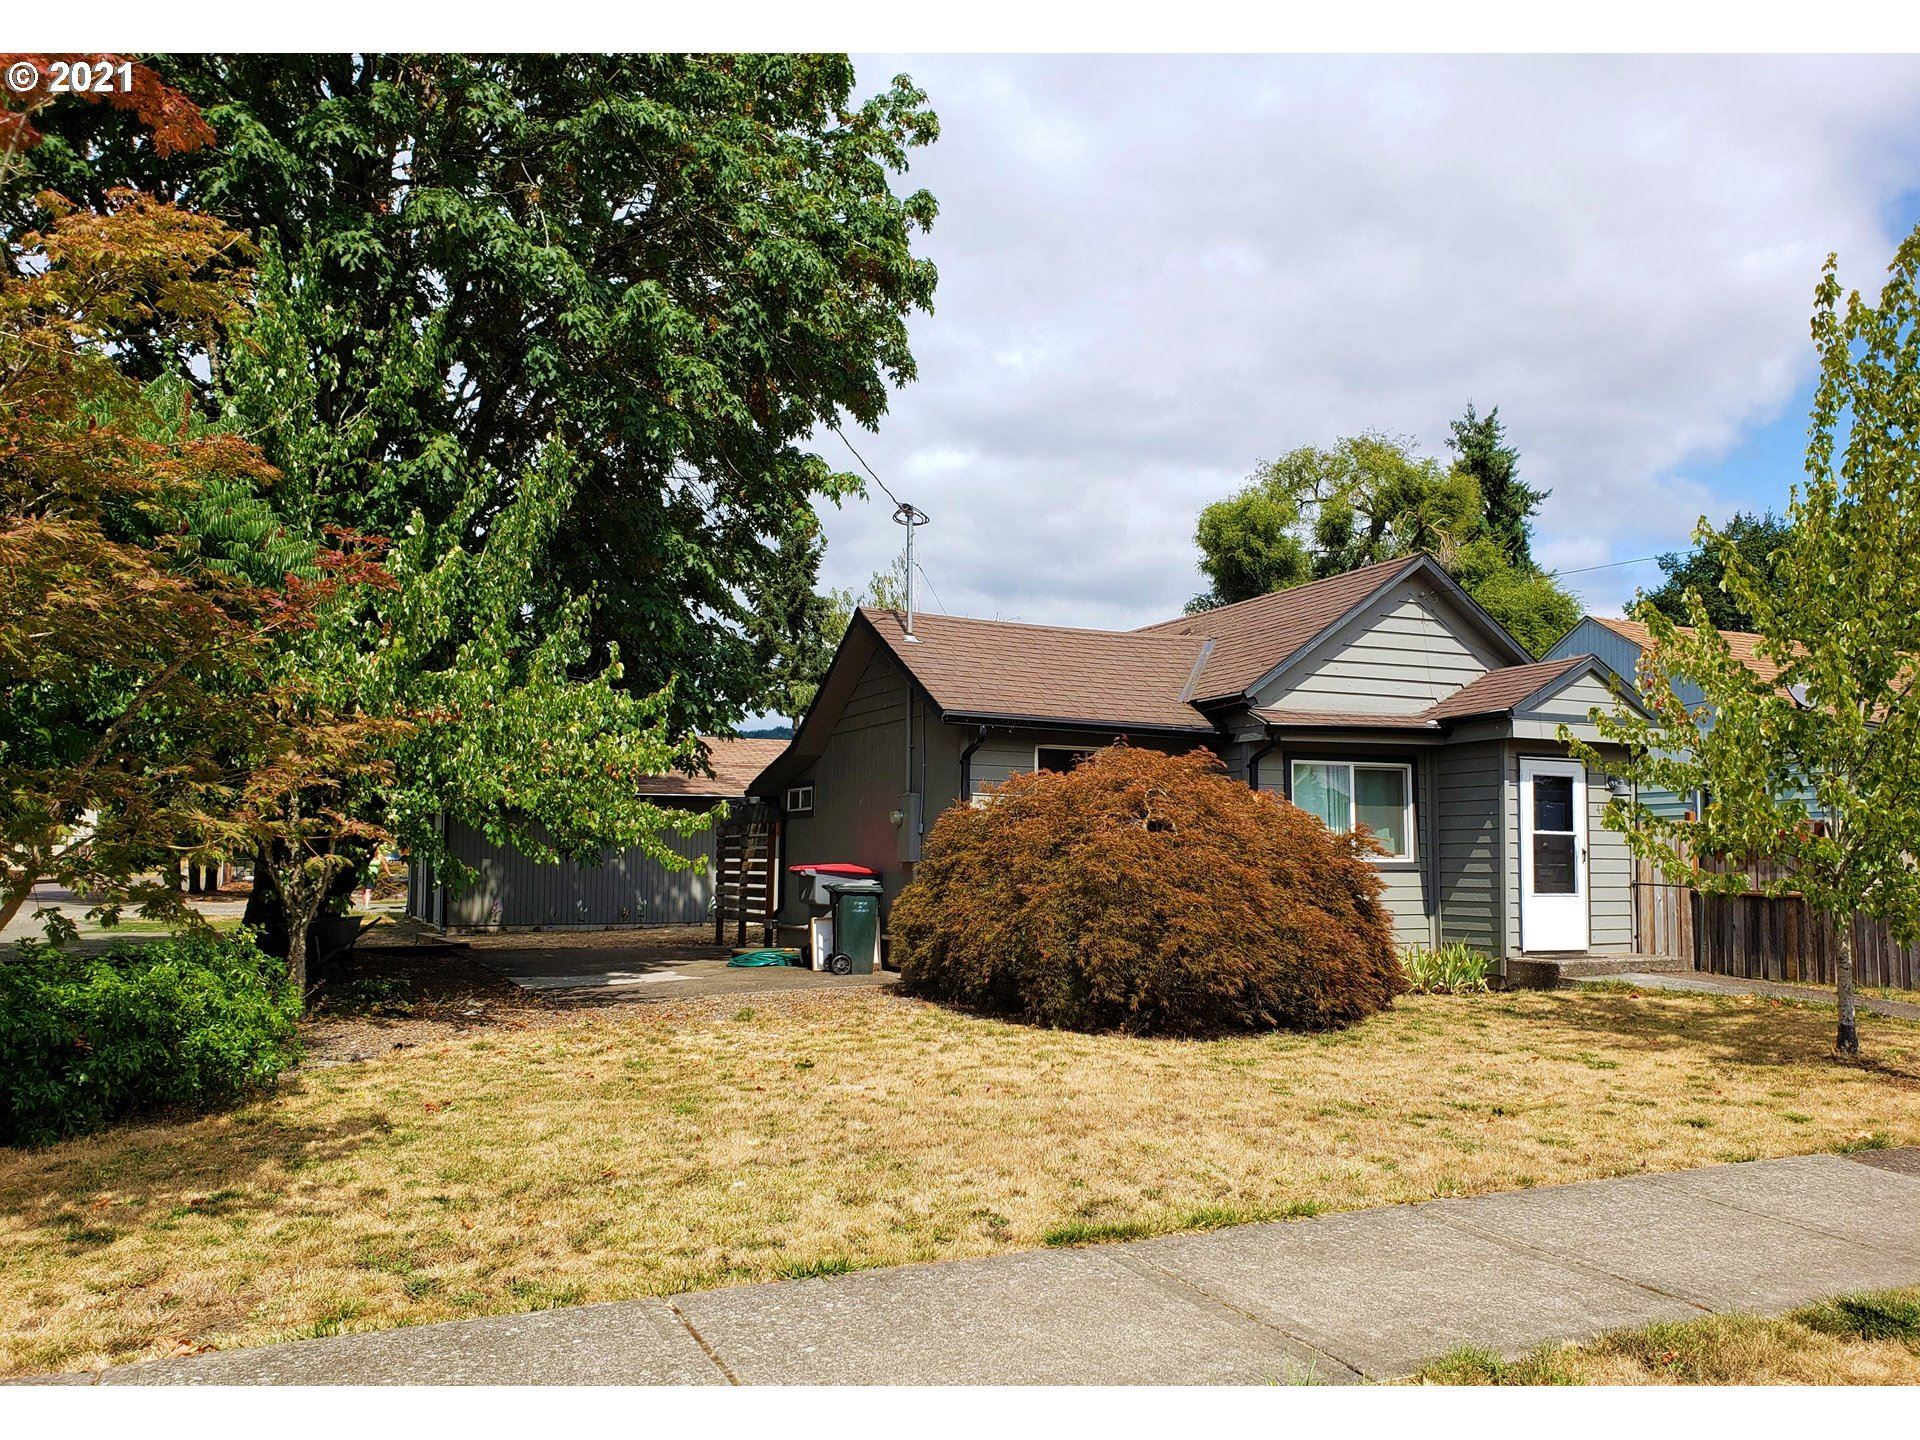 447 NW YAMHILL ST, Sheridan, OR 97378 - MLS#: 21016308